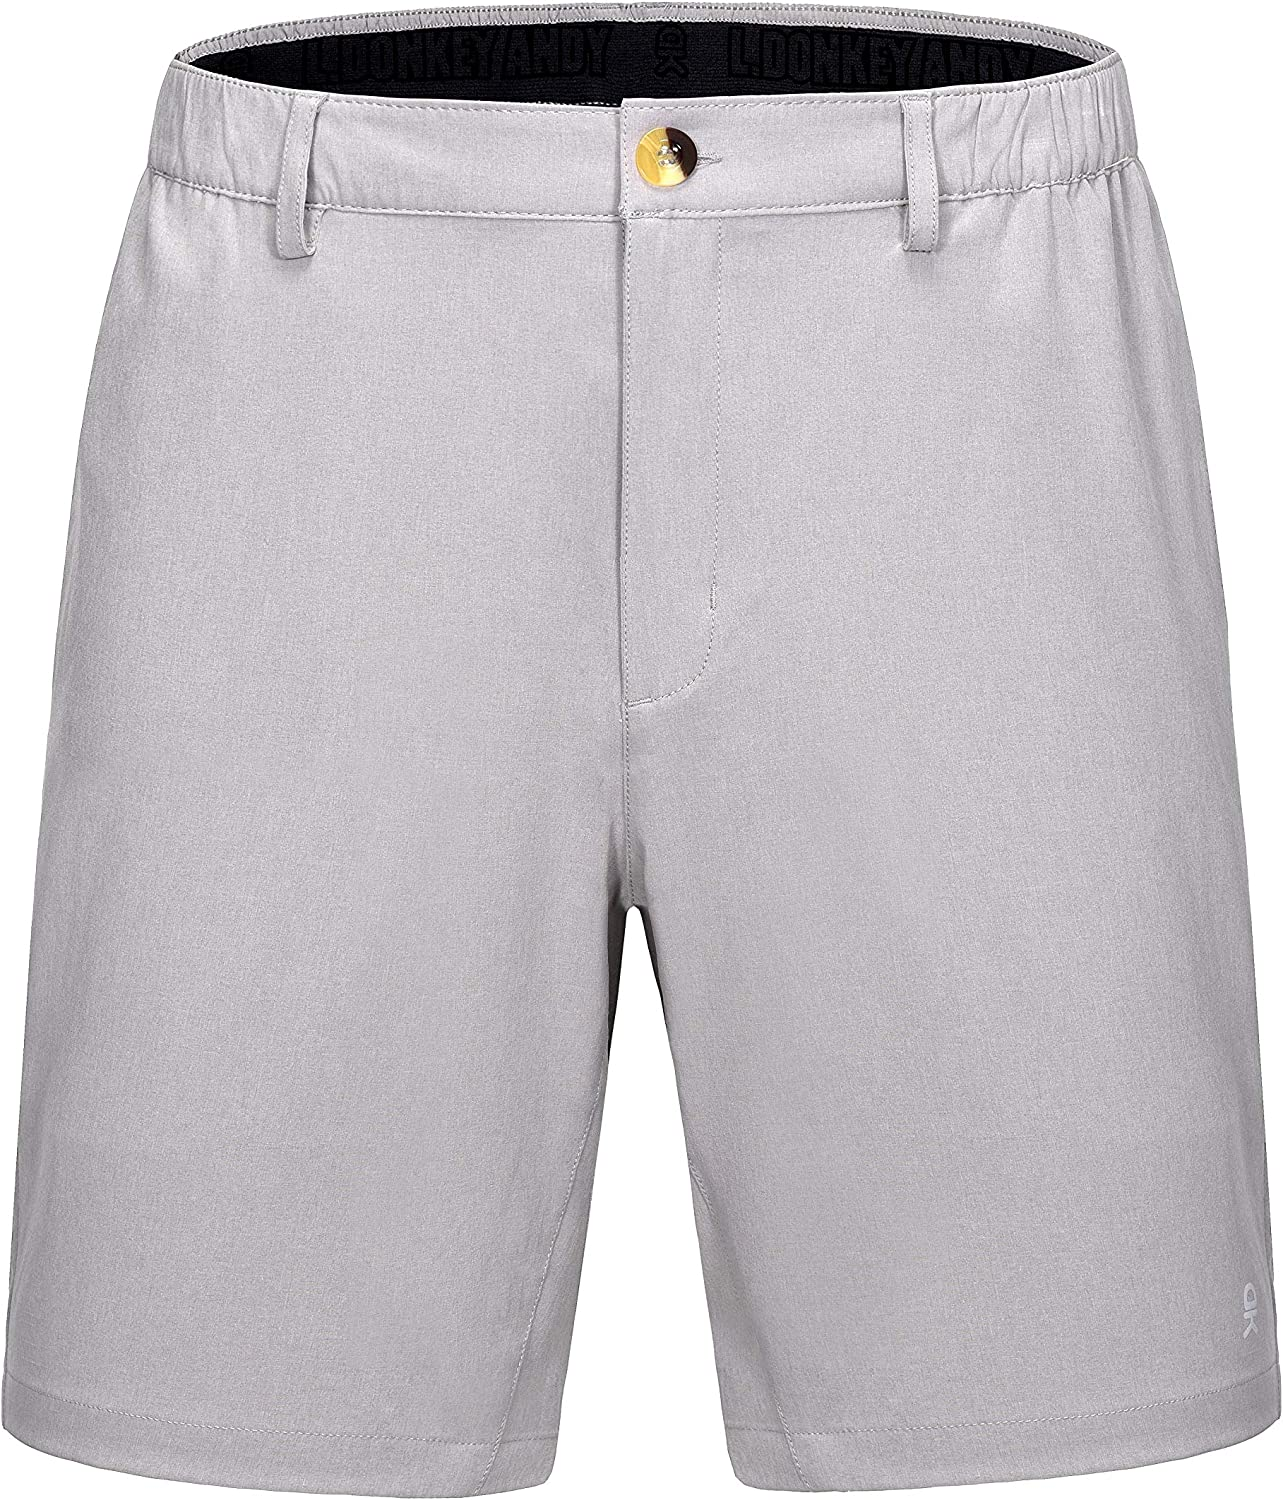 Little Donkey Super intense SALE Andy Men's Bermuda excellence 9 Inch St Dry Lightweight Quick